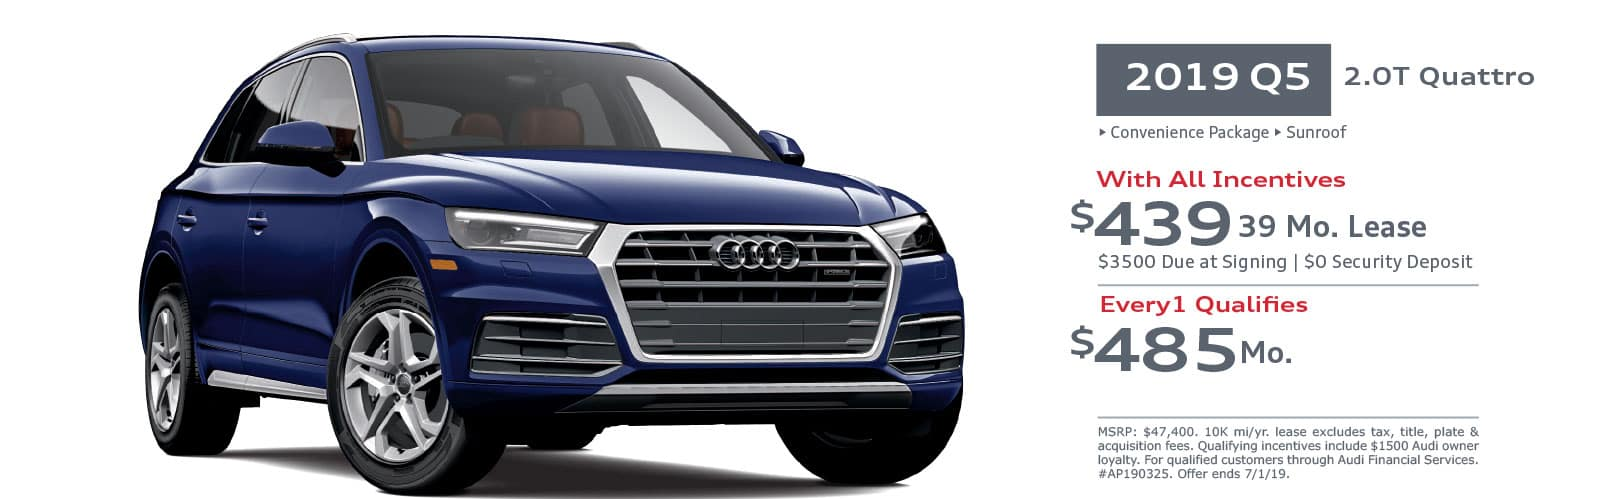 Audi Q5 Lease >> Audi Lease Deals Washington New Car Lease Specials Pittsburgh